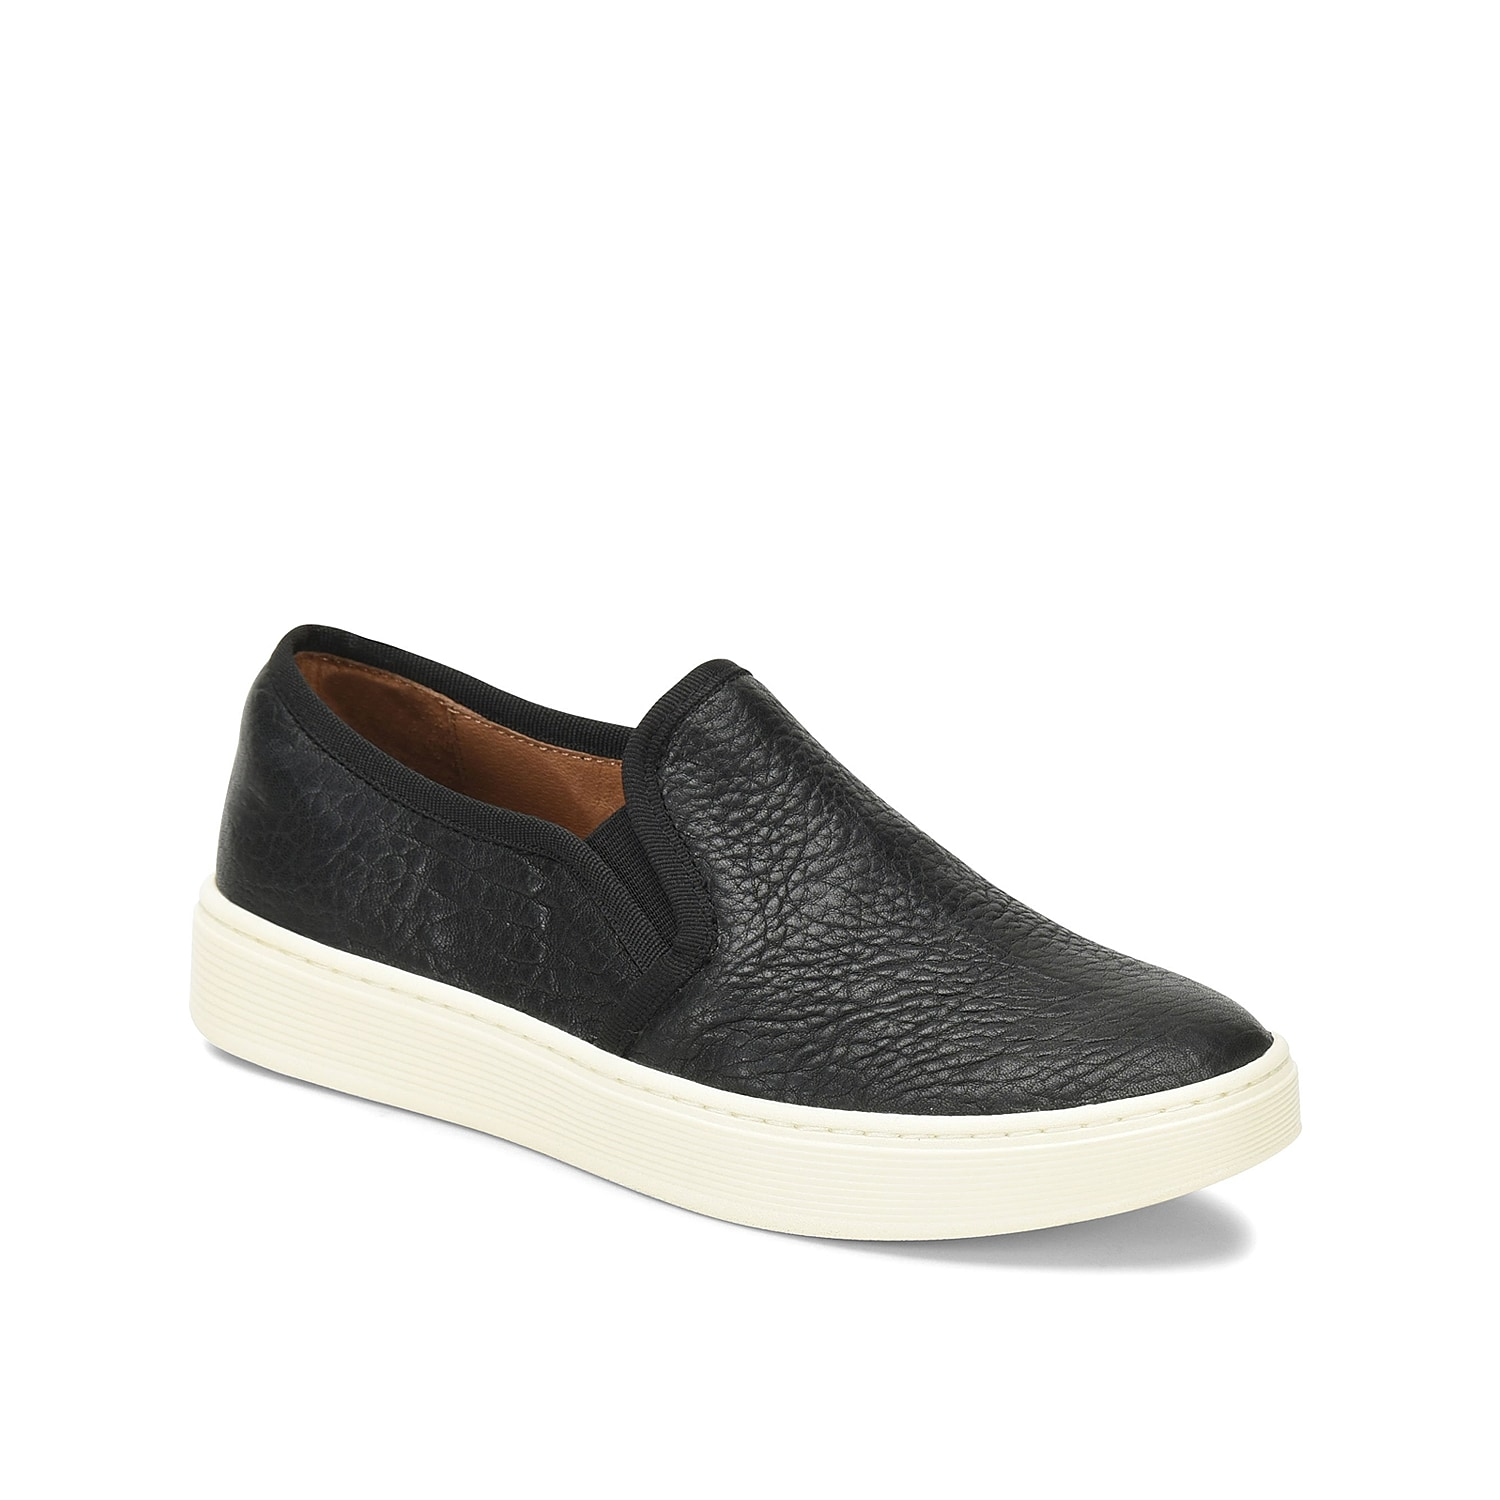 The Somers sneaker from Sofft will bring plenty of attitude to any outfit. These slip-ons feature a rich leather upper and are grounded with a multi-layer insole with an arch cookie for superior support.